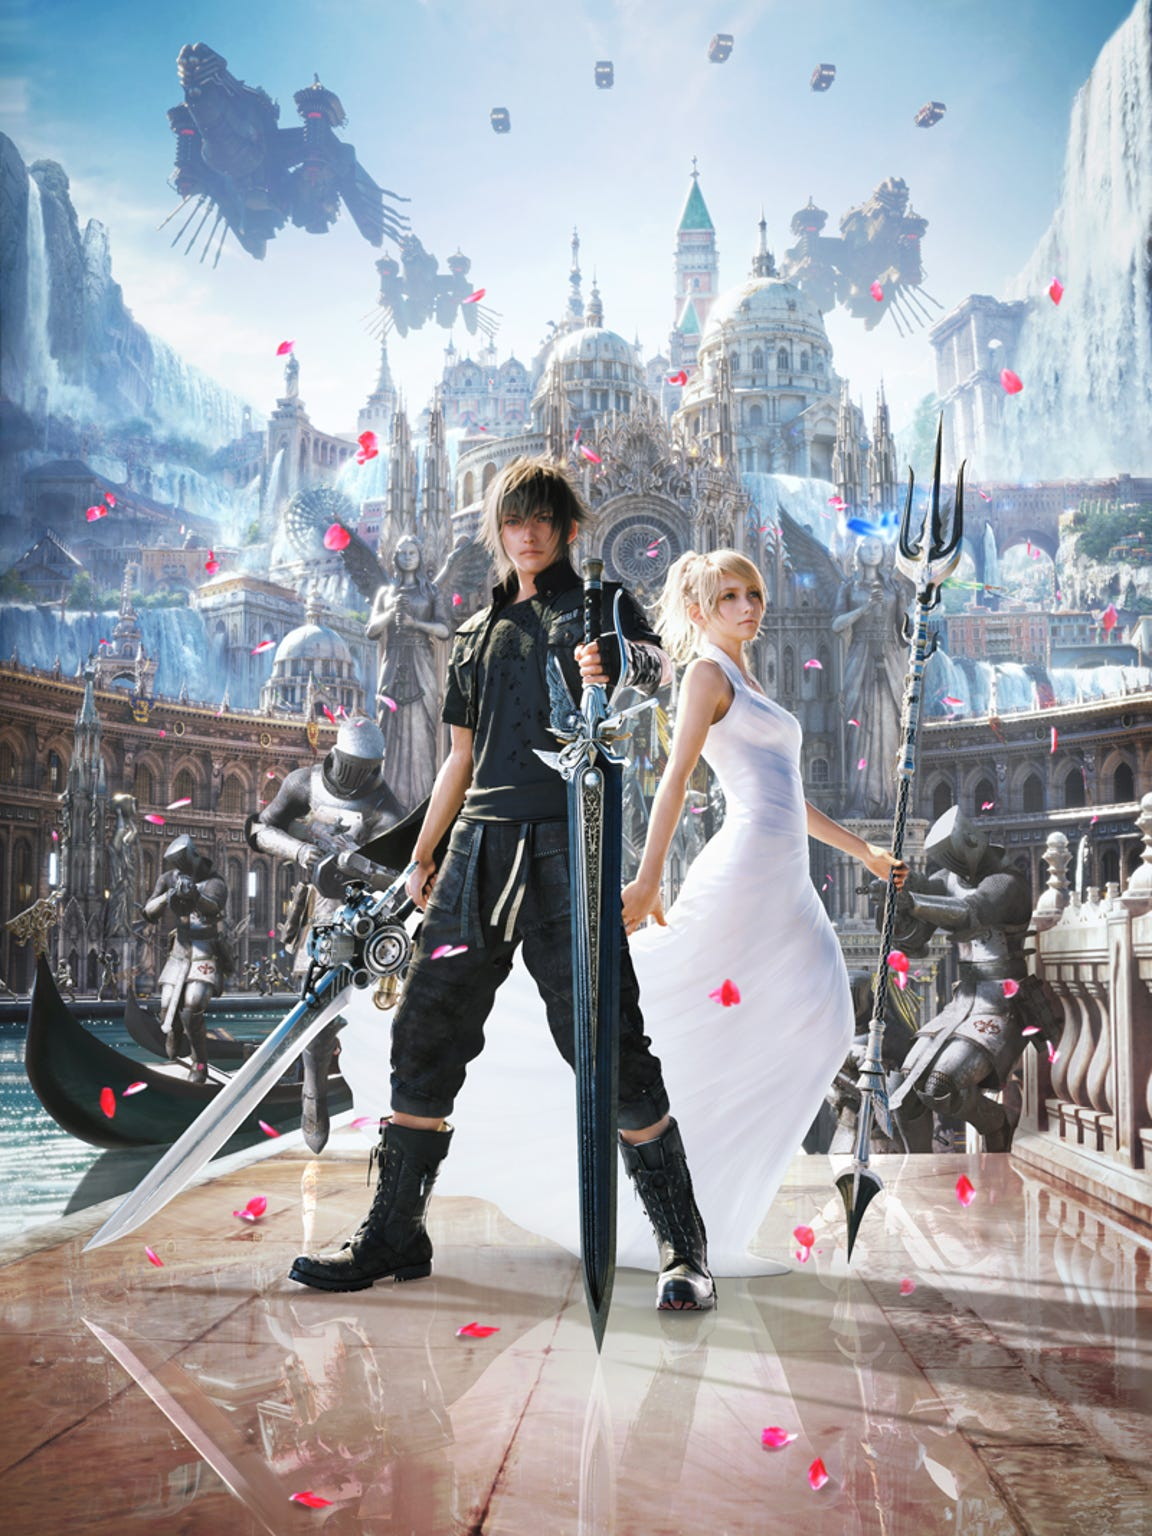 Final Fantasy XV art.